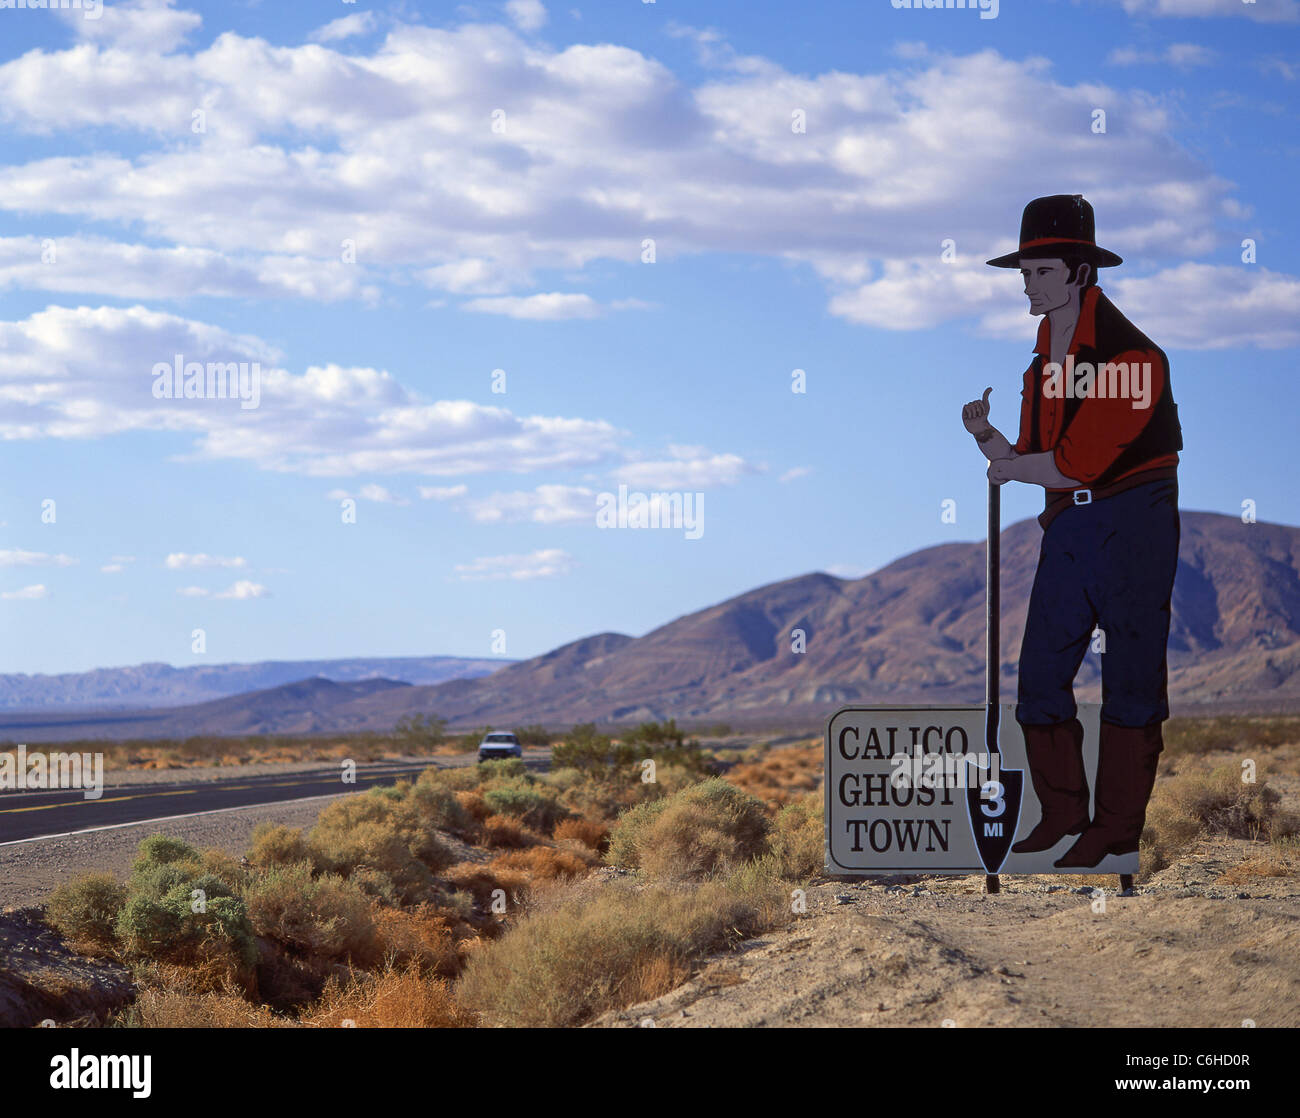 Entrance sign for Calico Ghost Mining Town, Barstow, San Bernardino County, California, United States of America - Stock Image